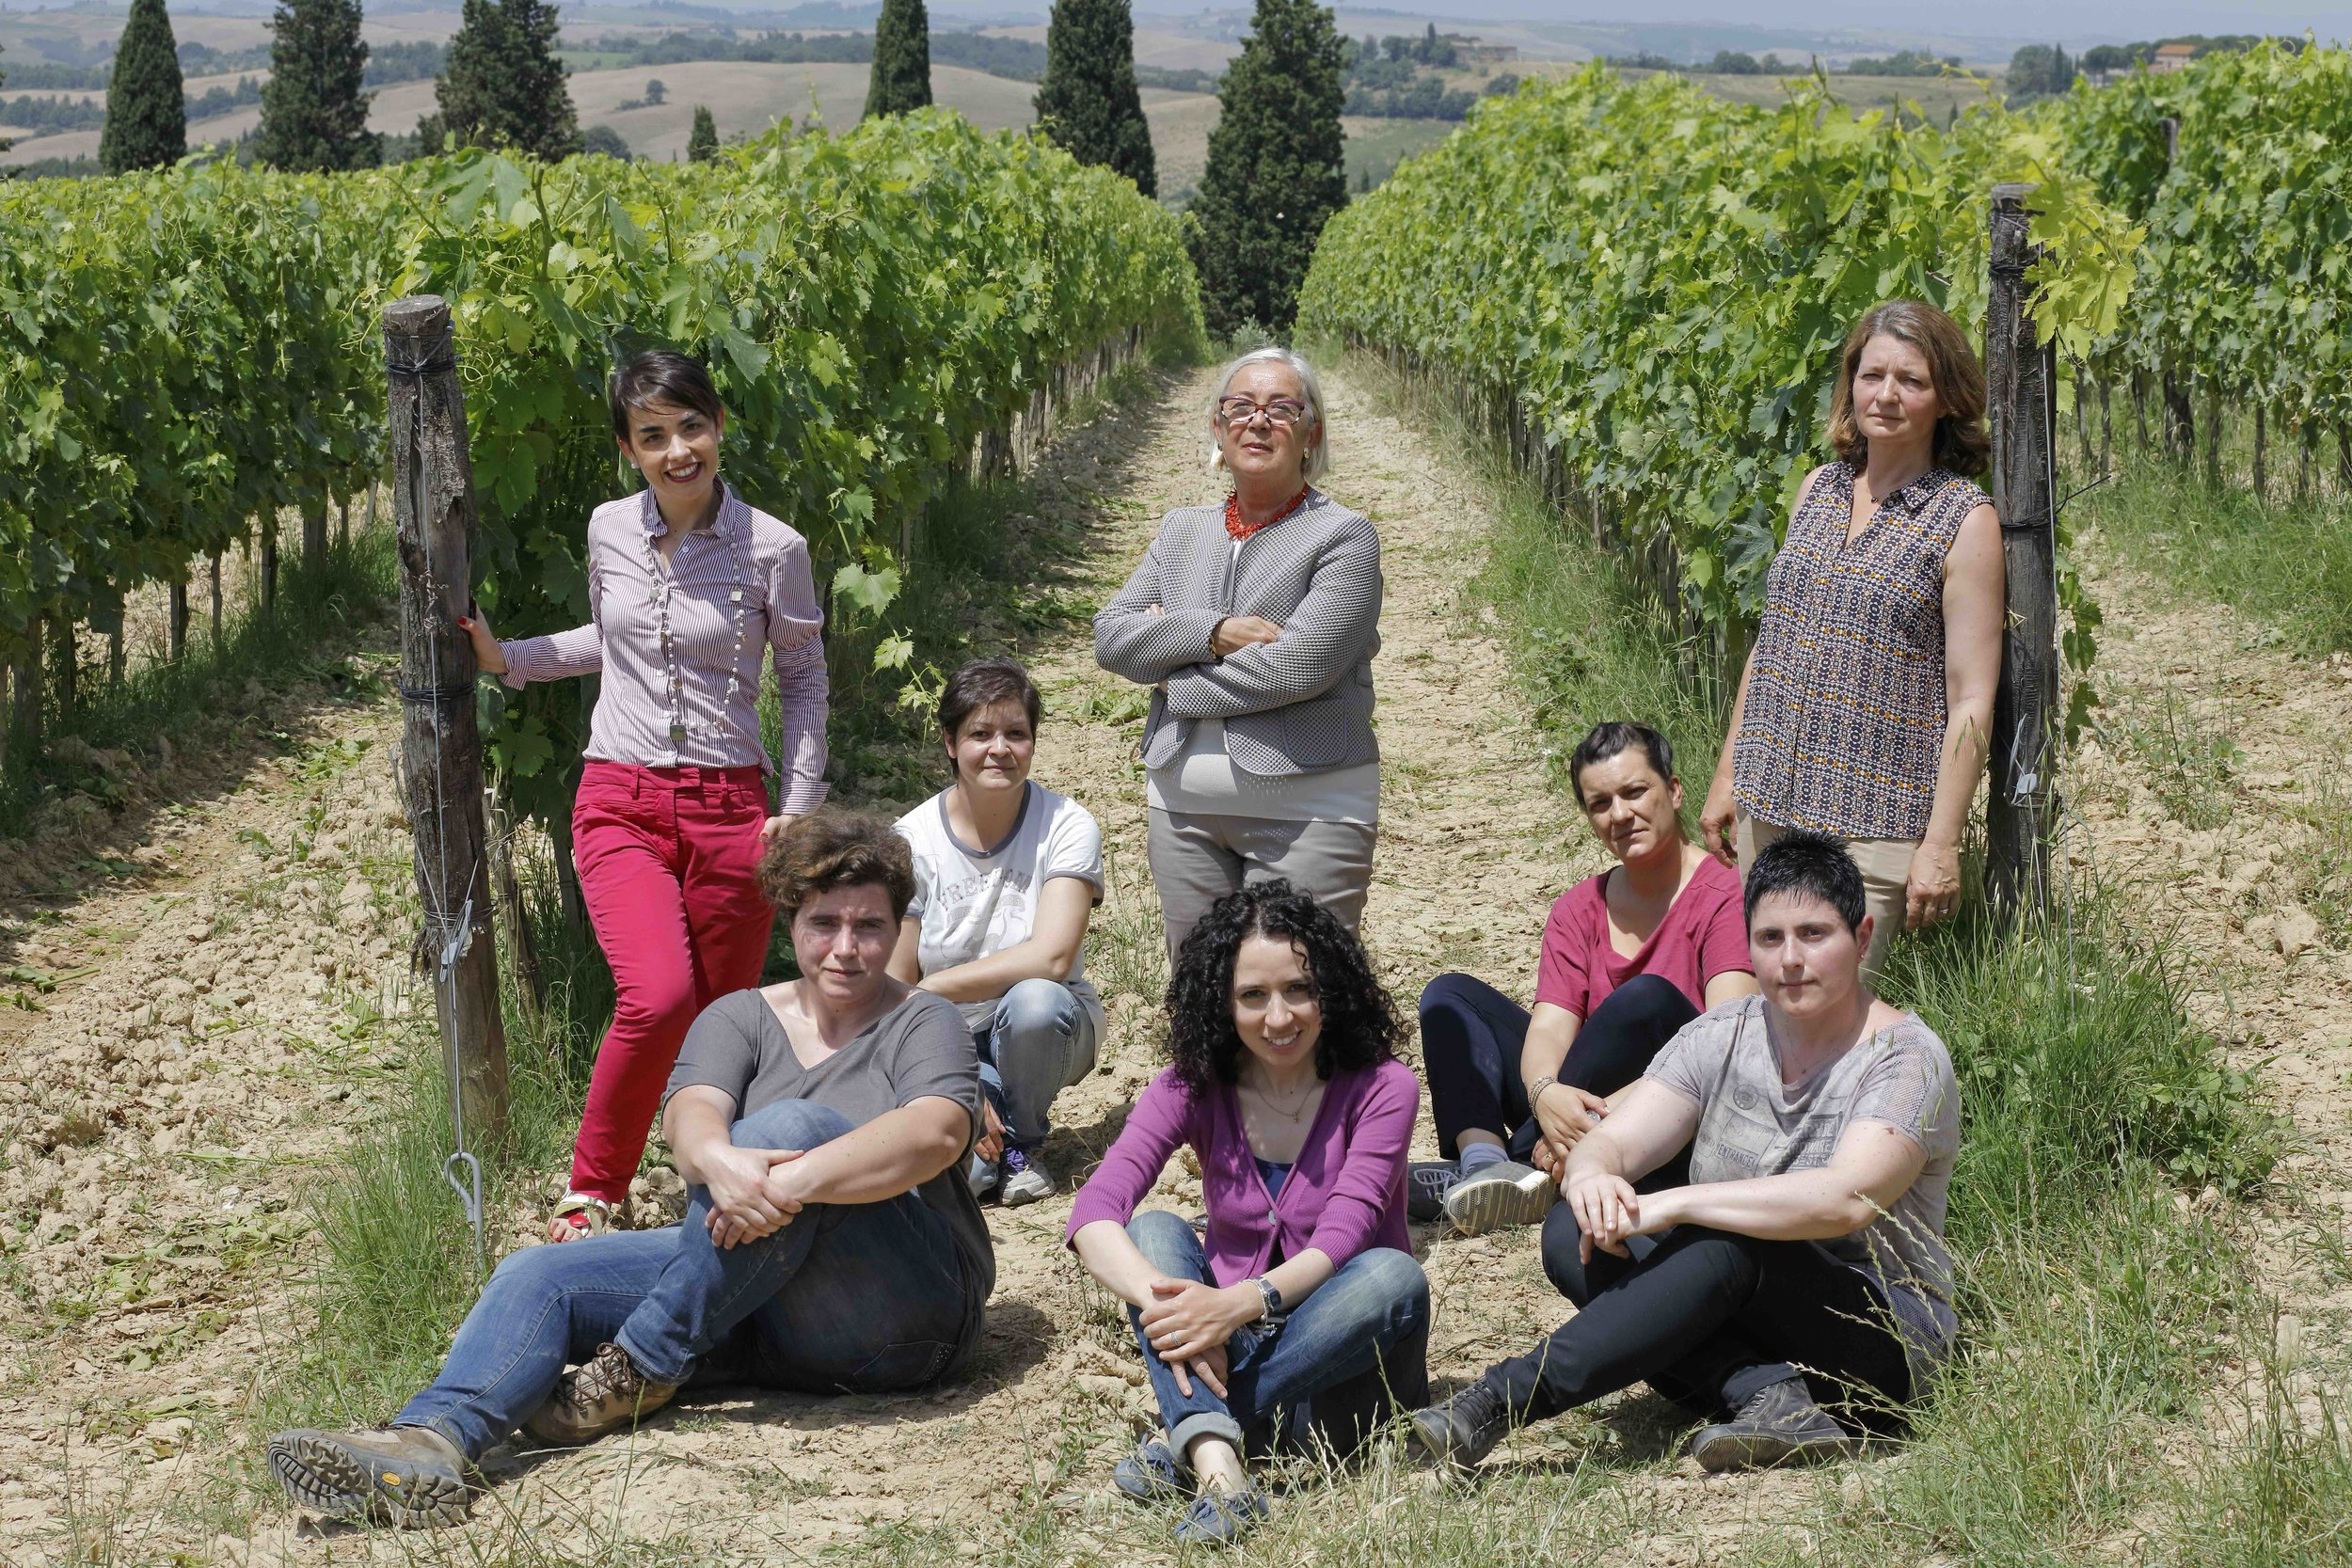 Donatella Cinelli Colombini (center) opened Italy's first all-women winery